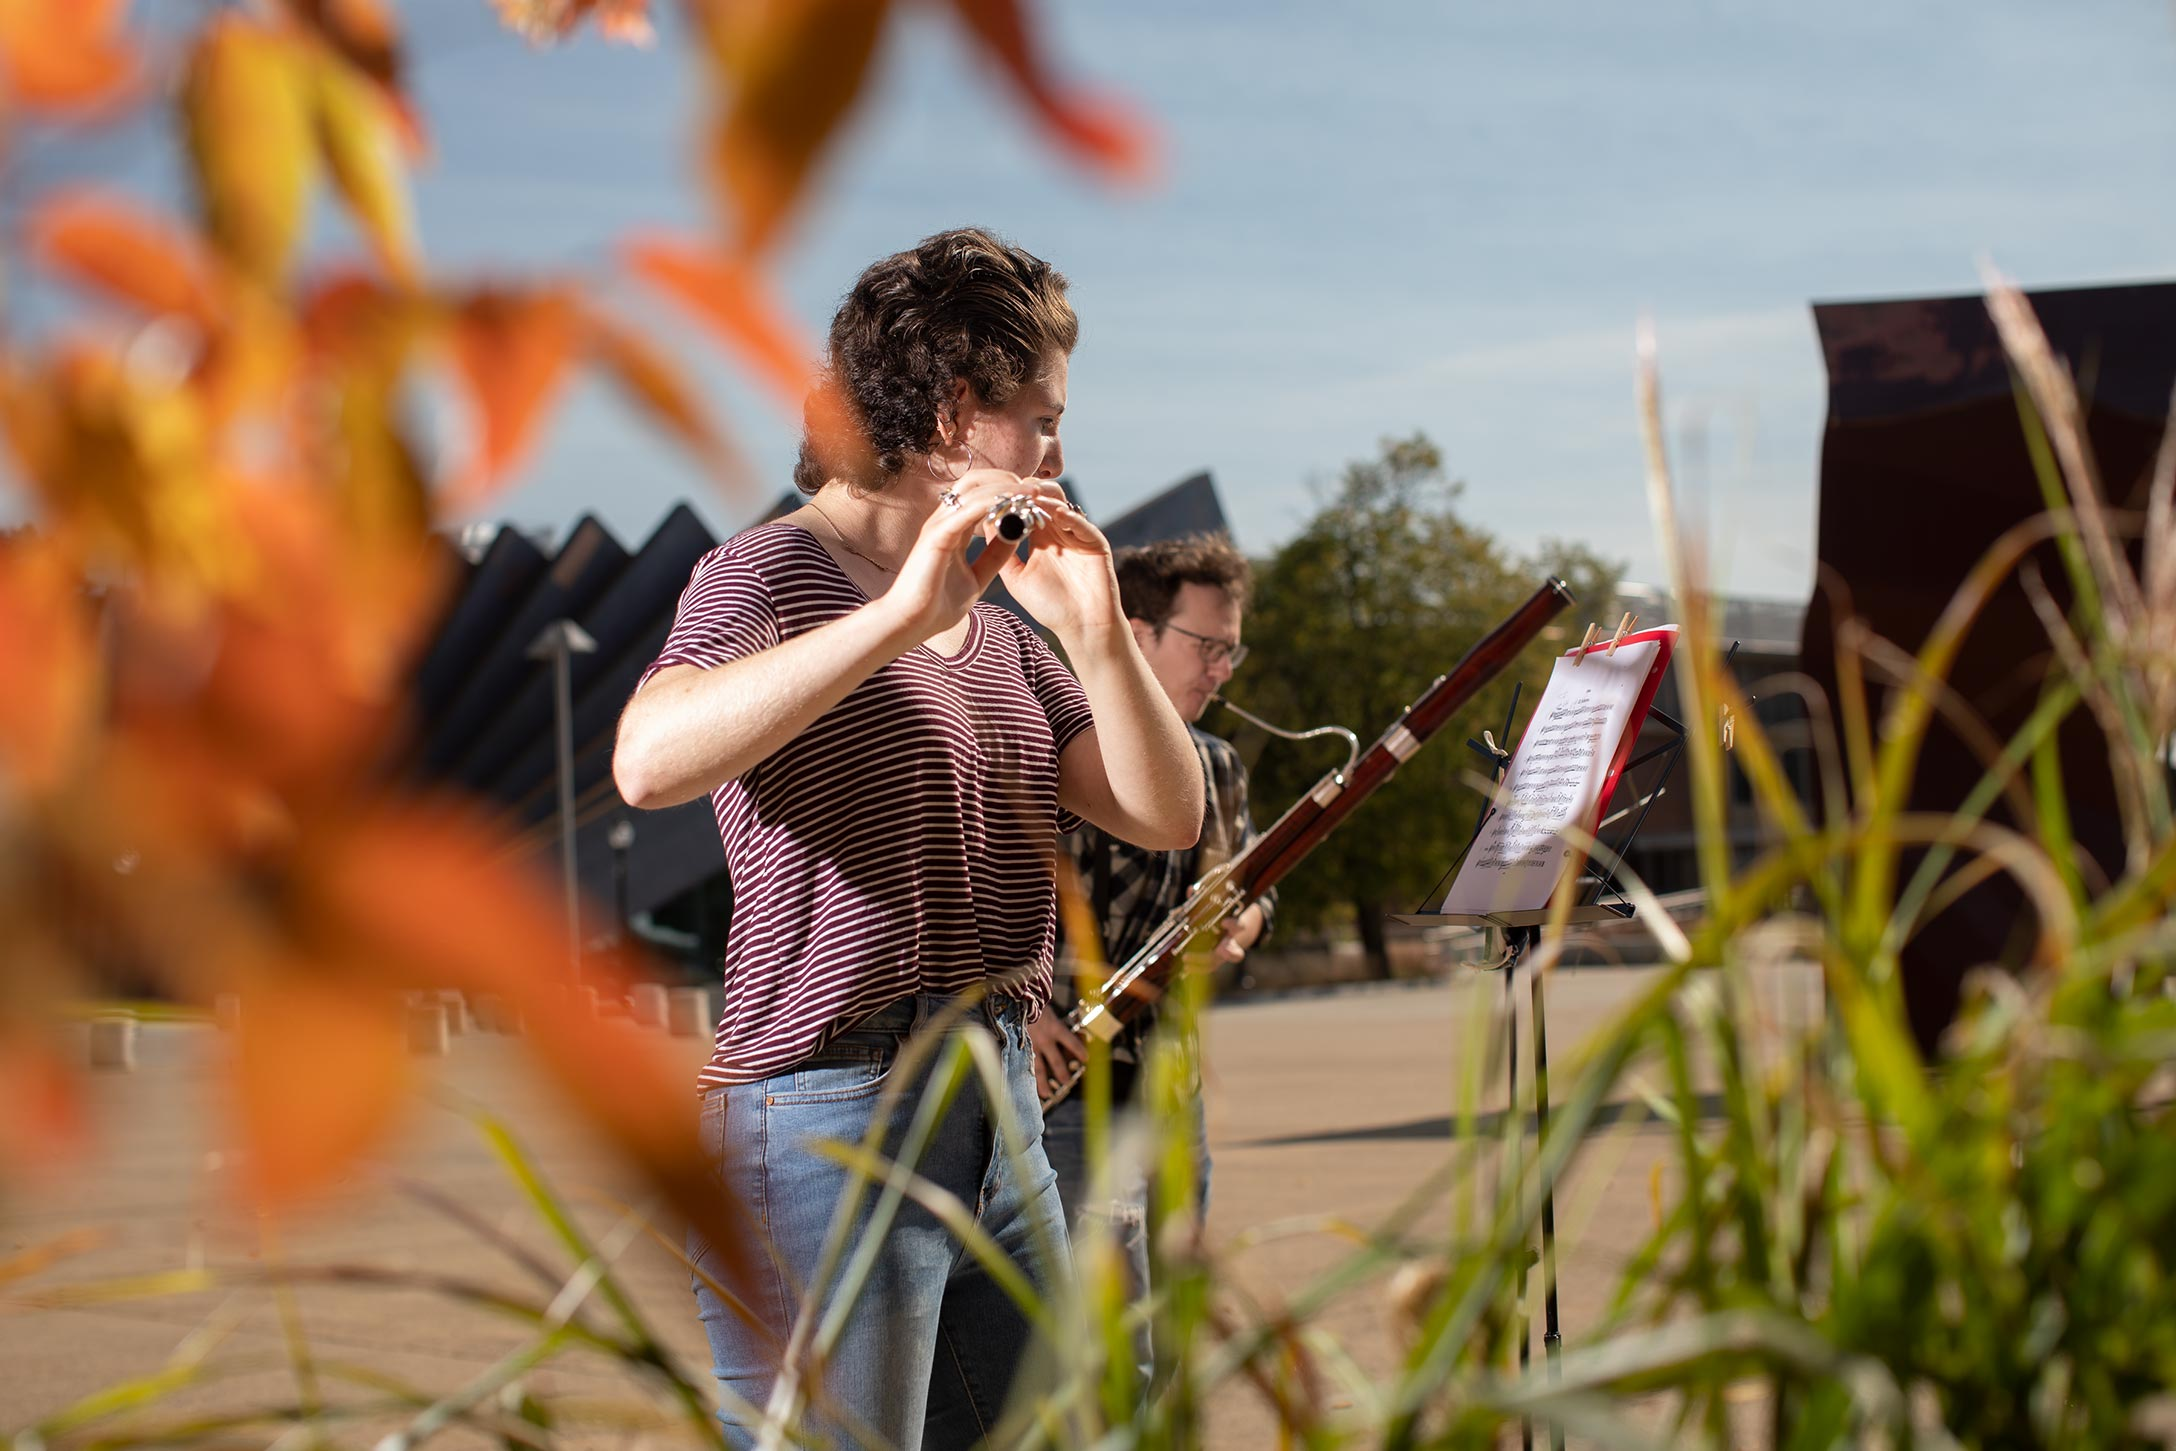 A Wind Ensemble member practices on campus outdoors.